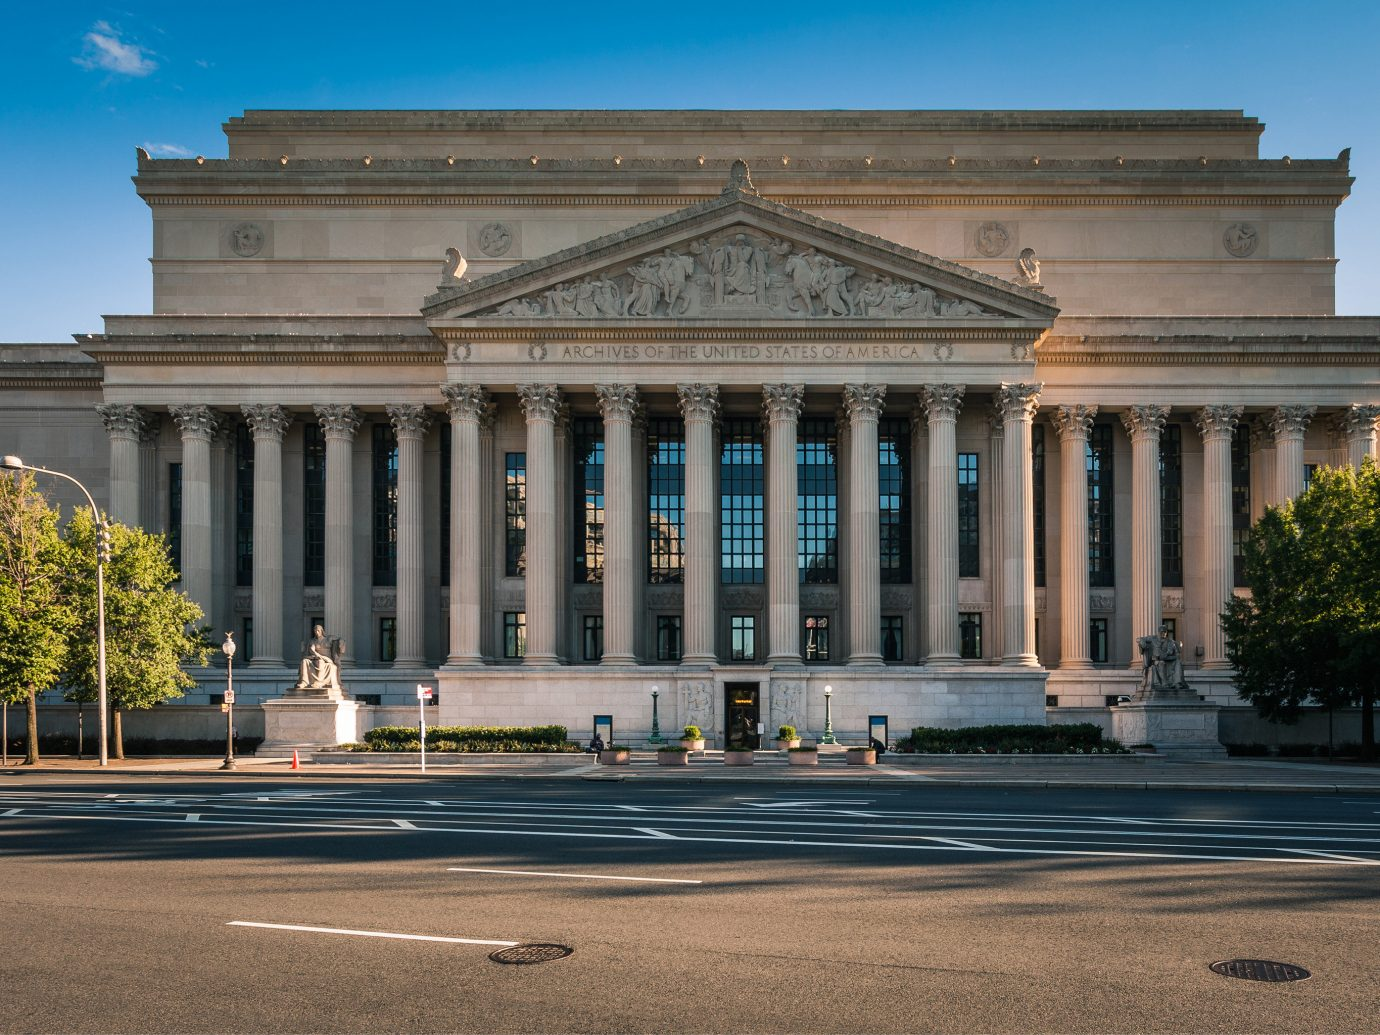 Trip Ideas road outdoor sky building landmark structure Architecture classical architecture street government building Downtown facade plaza palace City opera house courthouse estate colonnade day